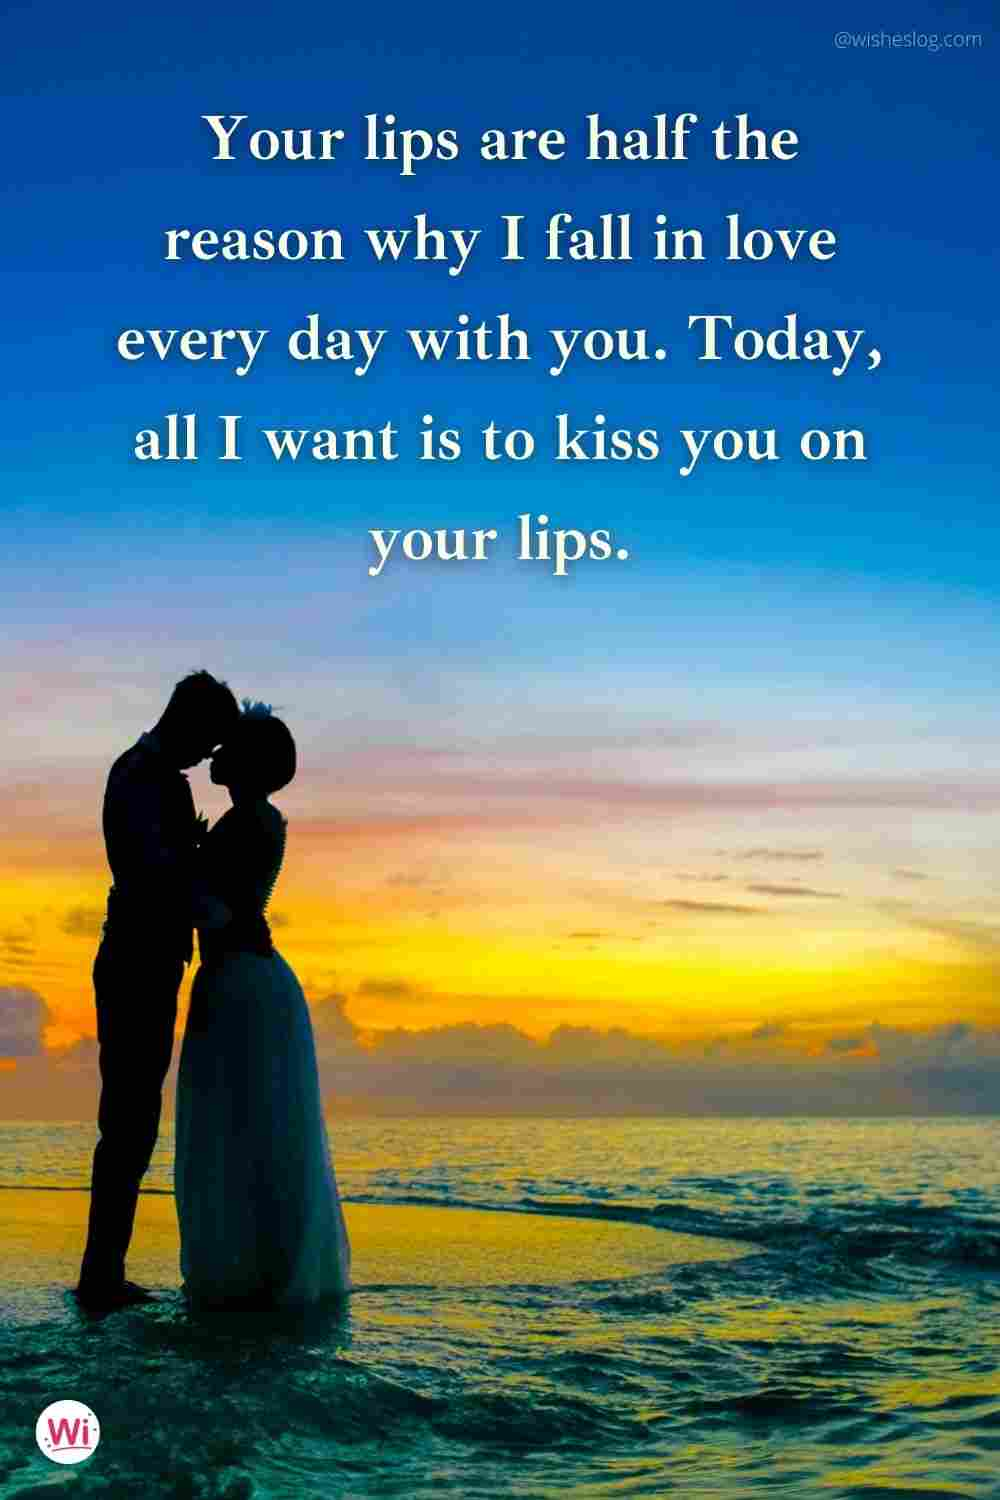 happy kiss day wishes quotes for girlfriend